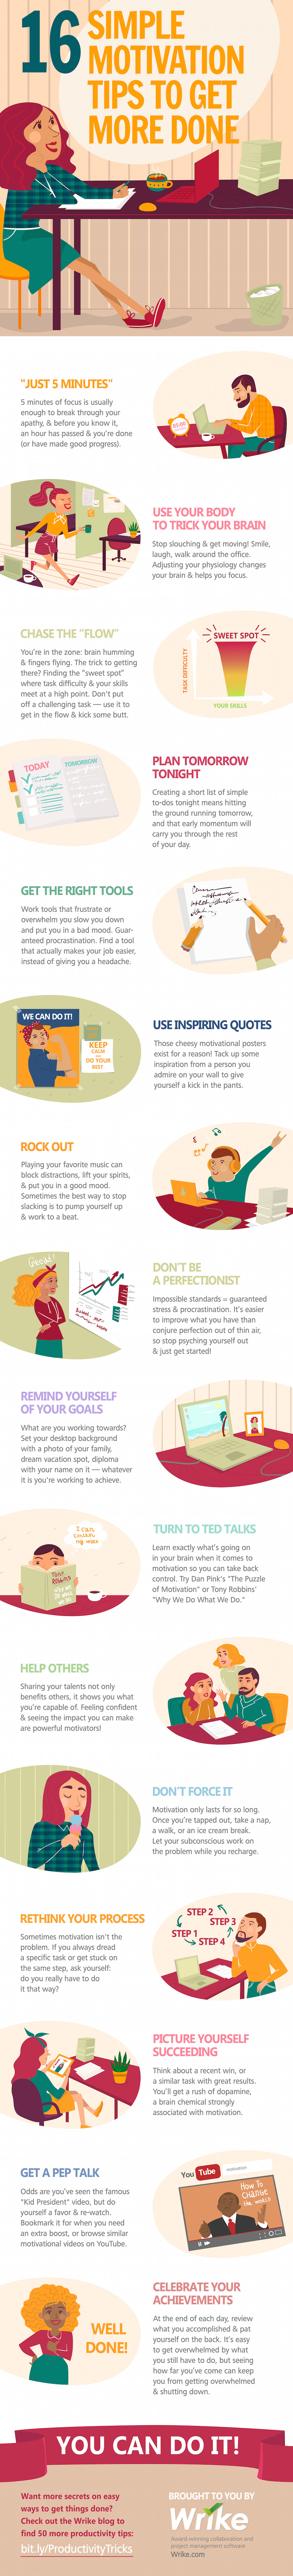 16 Simple Motivation Tips to Get More Done (Infographic)